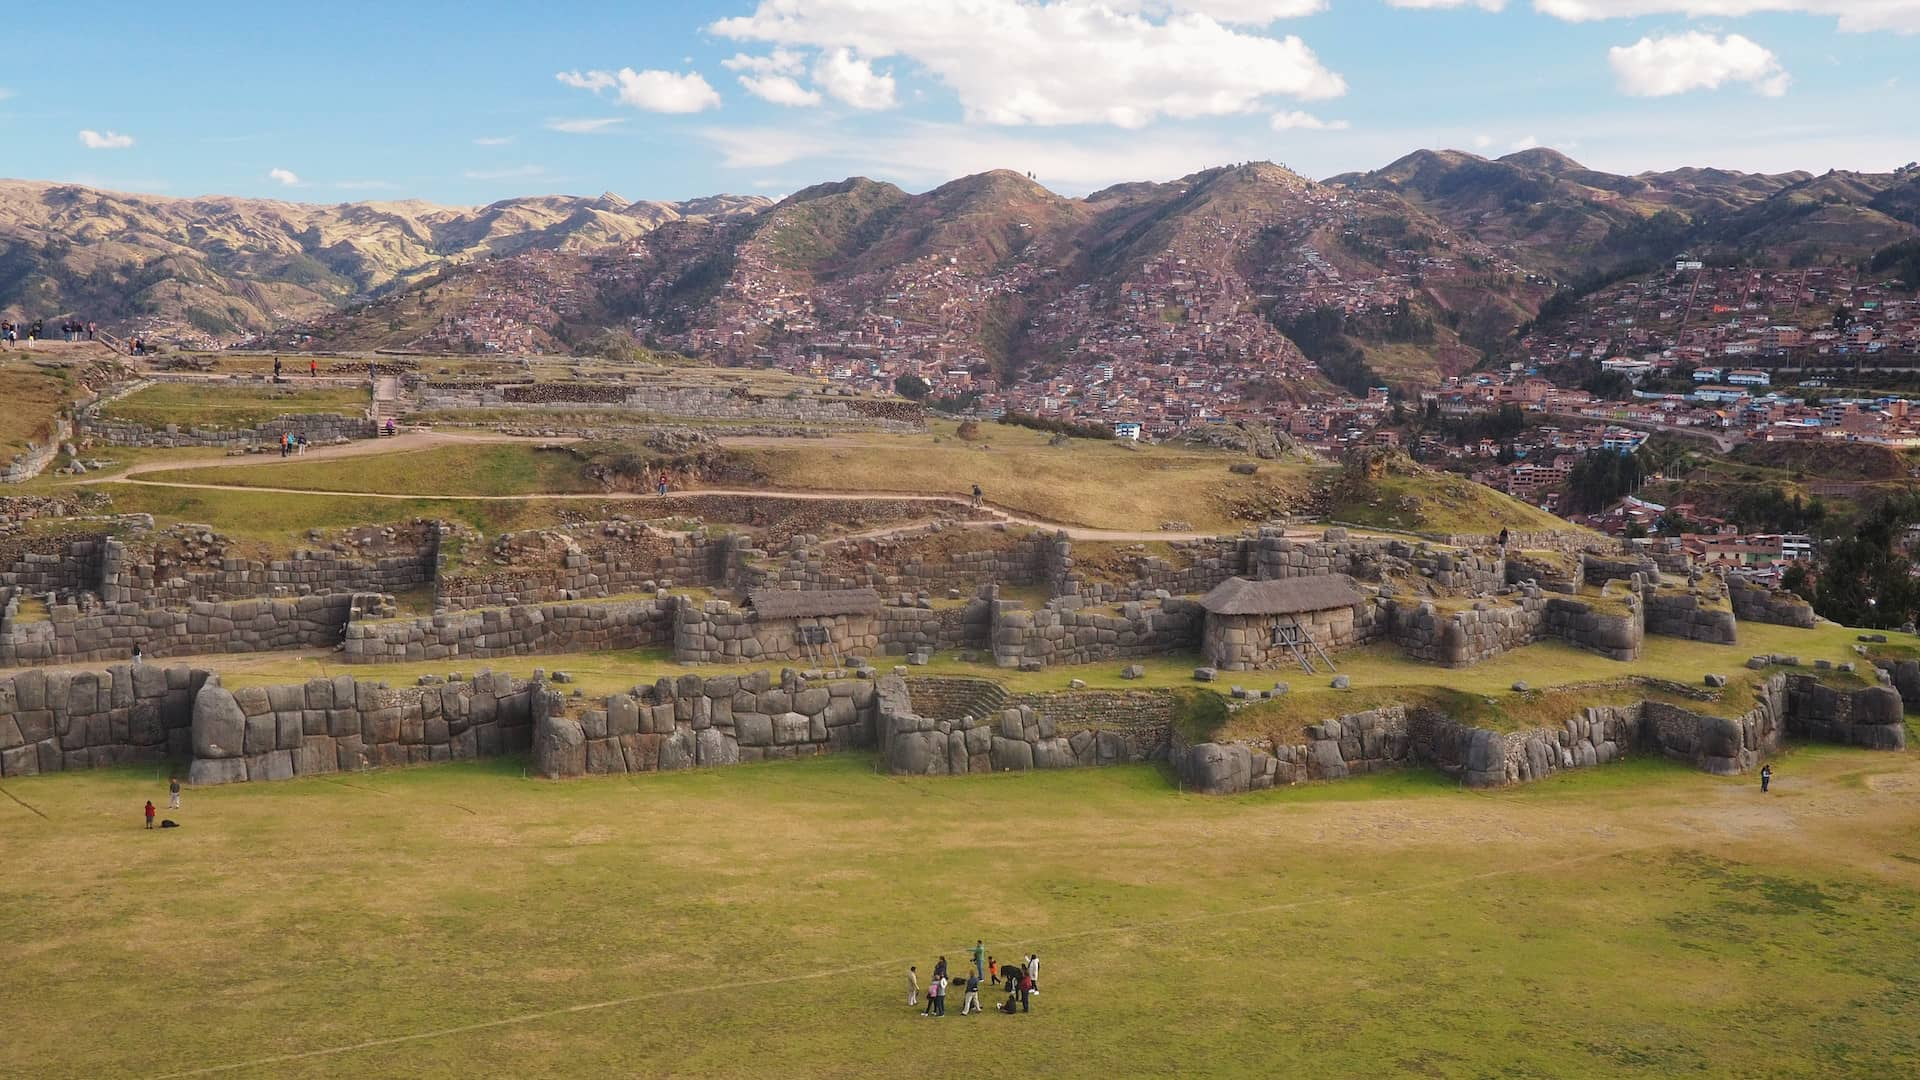 A panoramic view of ruined stone walls with red roofed houses and mountains in the background